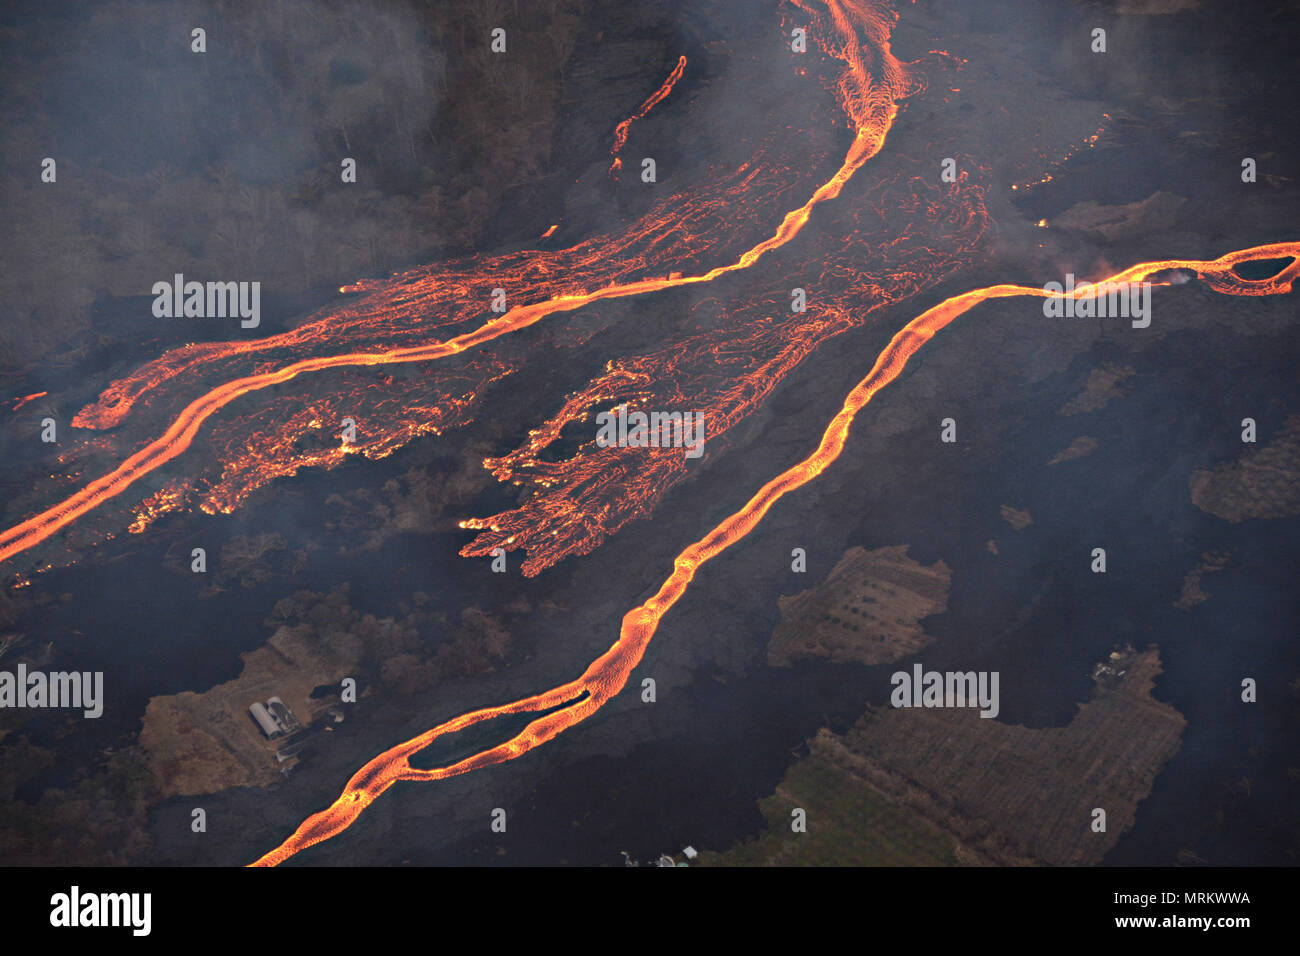 Channelized lava streams down the East Rift Zone from the eruption of the Kilauea volcano May 23, 2018 in Pahoa, Hawaii. Stock Photo